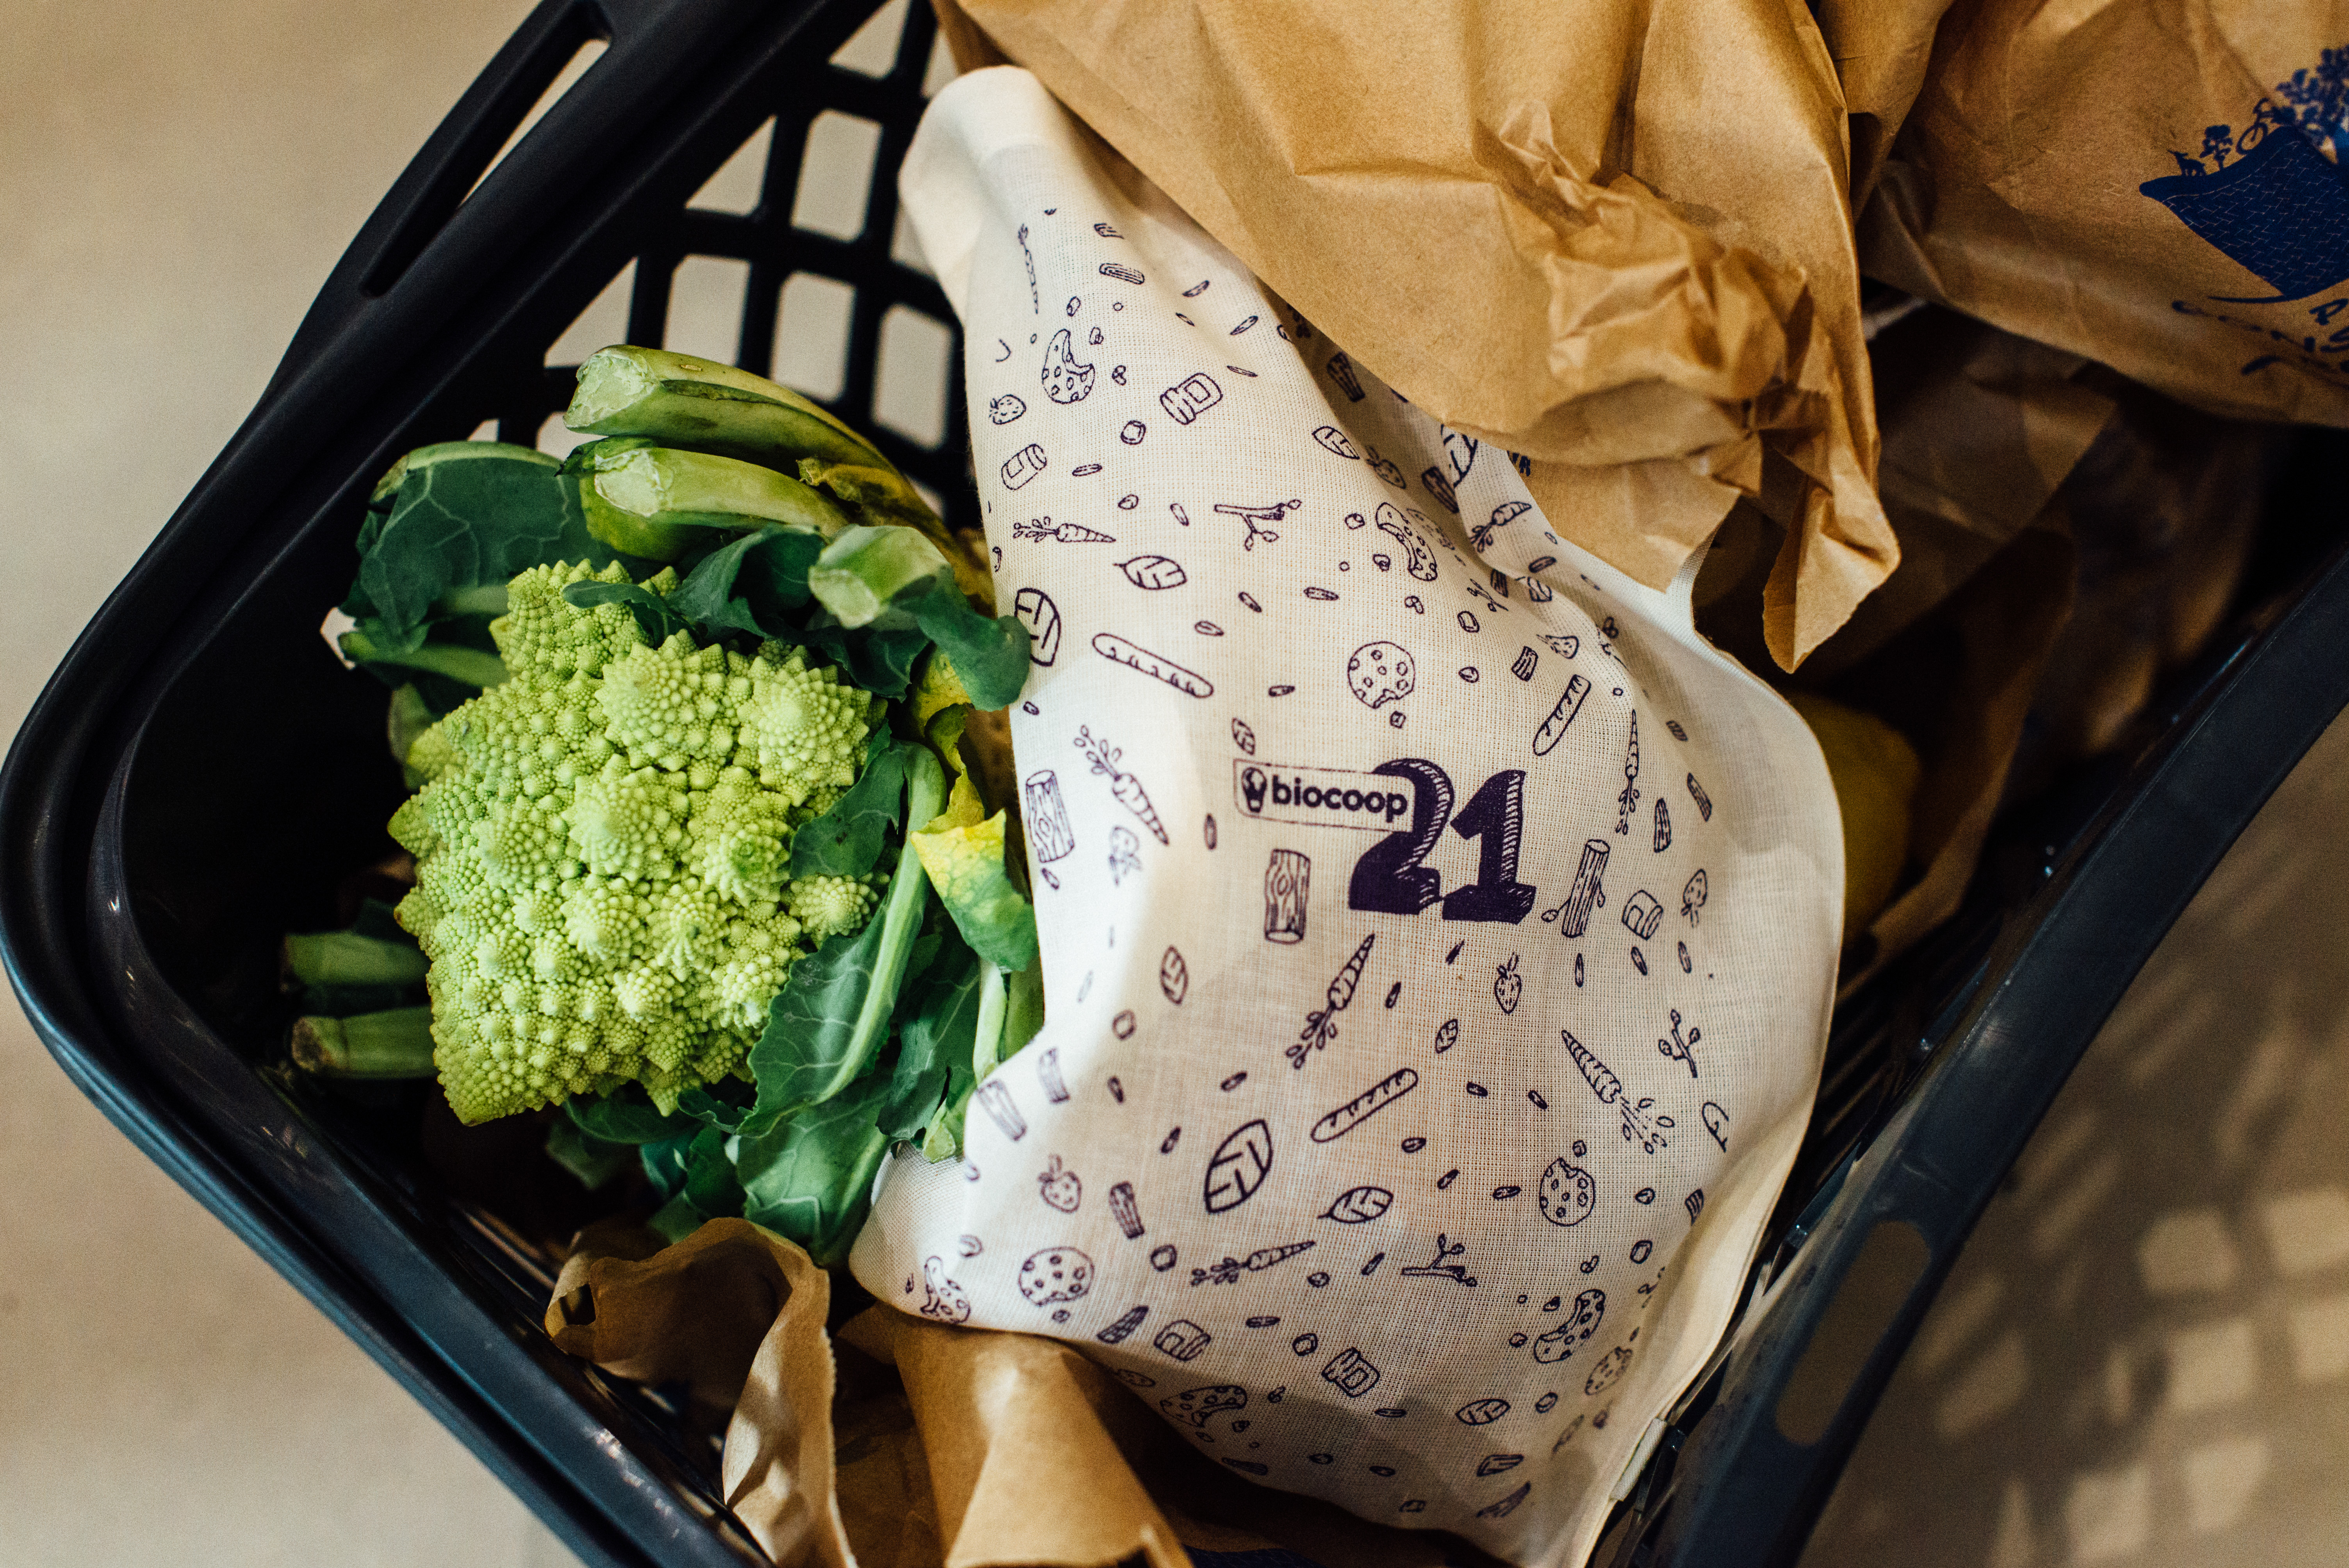 HiP Paris blog. BioCoop 21, Paris' first bag-free organic bulk shop. In lieu of plastic bags, the shop offers adorable reusable bags.